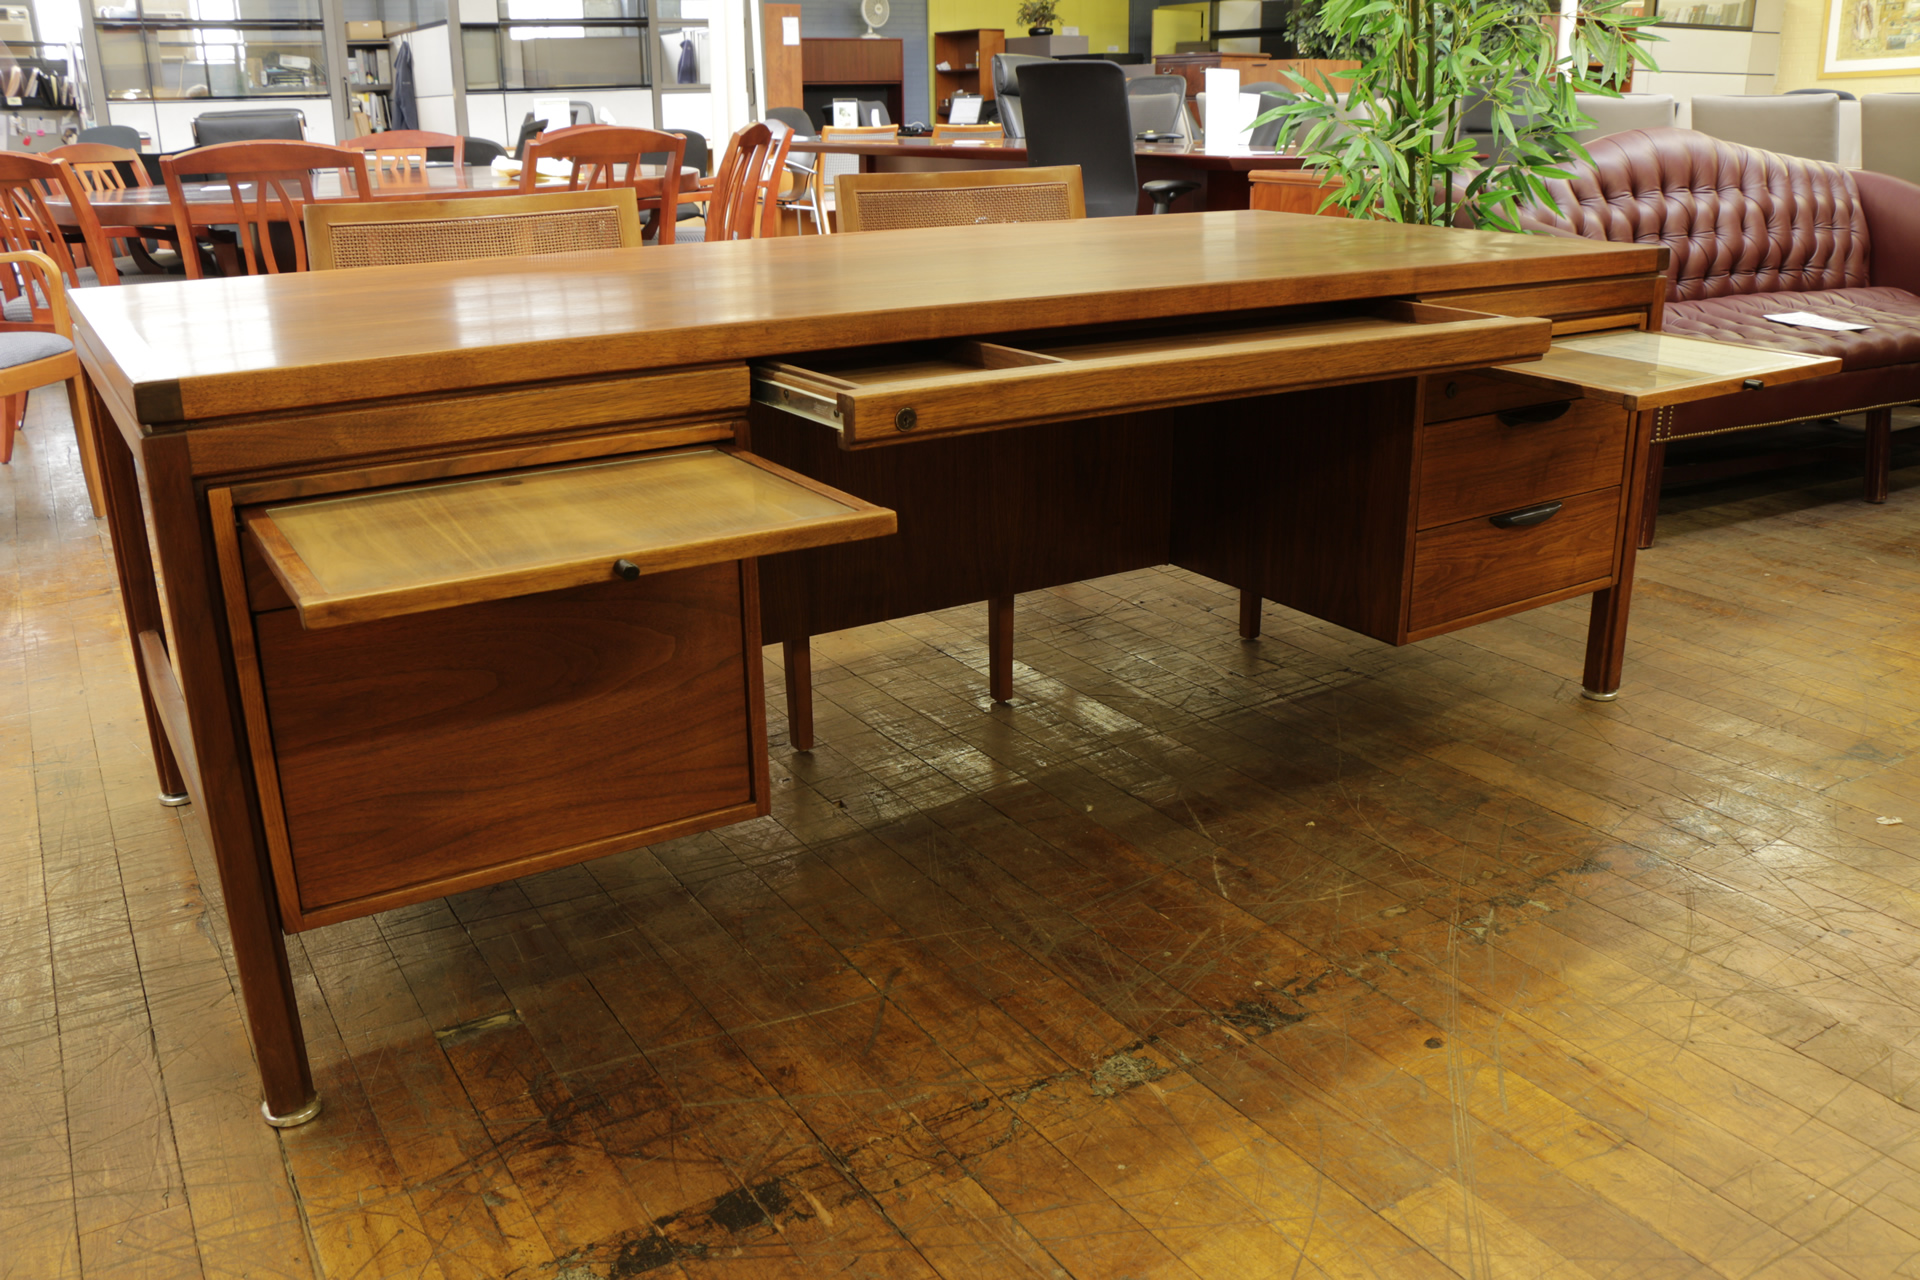 peartreeofficefurniture_peartreeofficefurniture_mg_1972.jpg